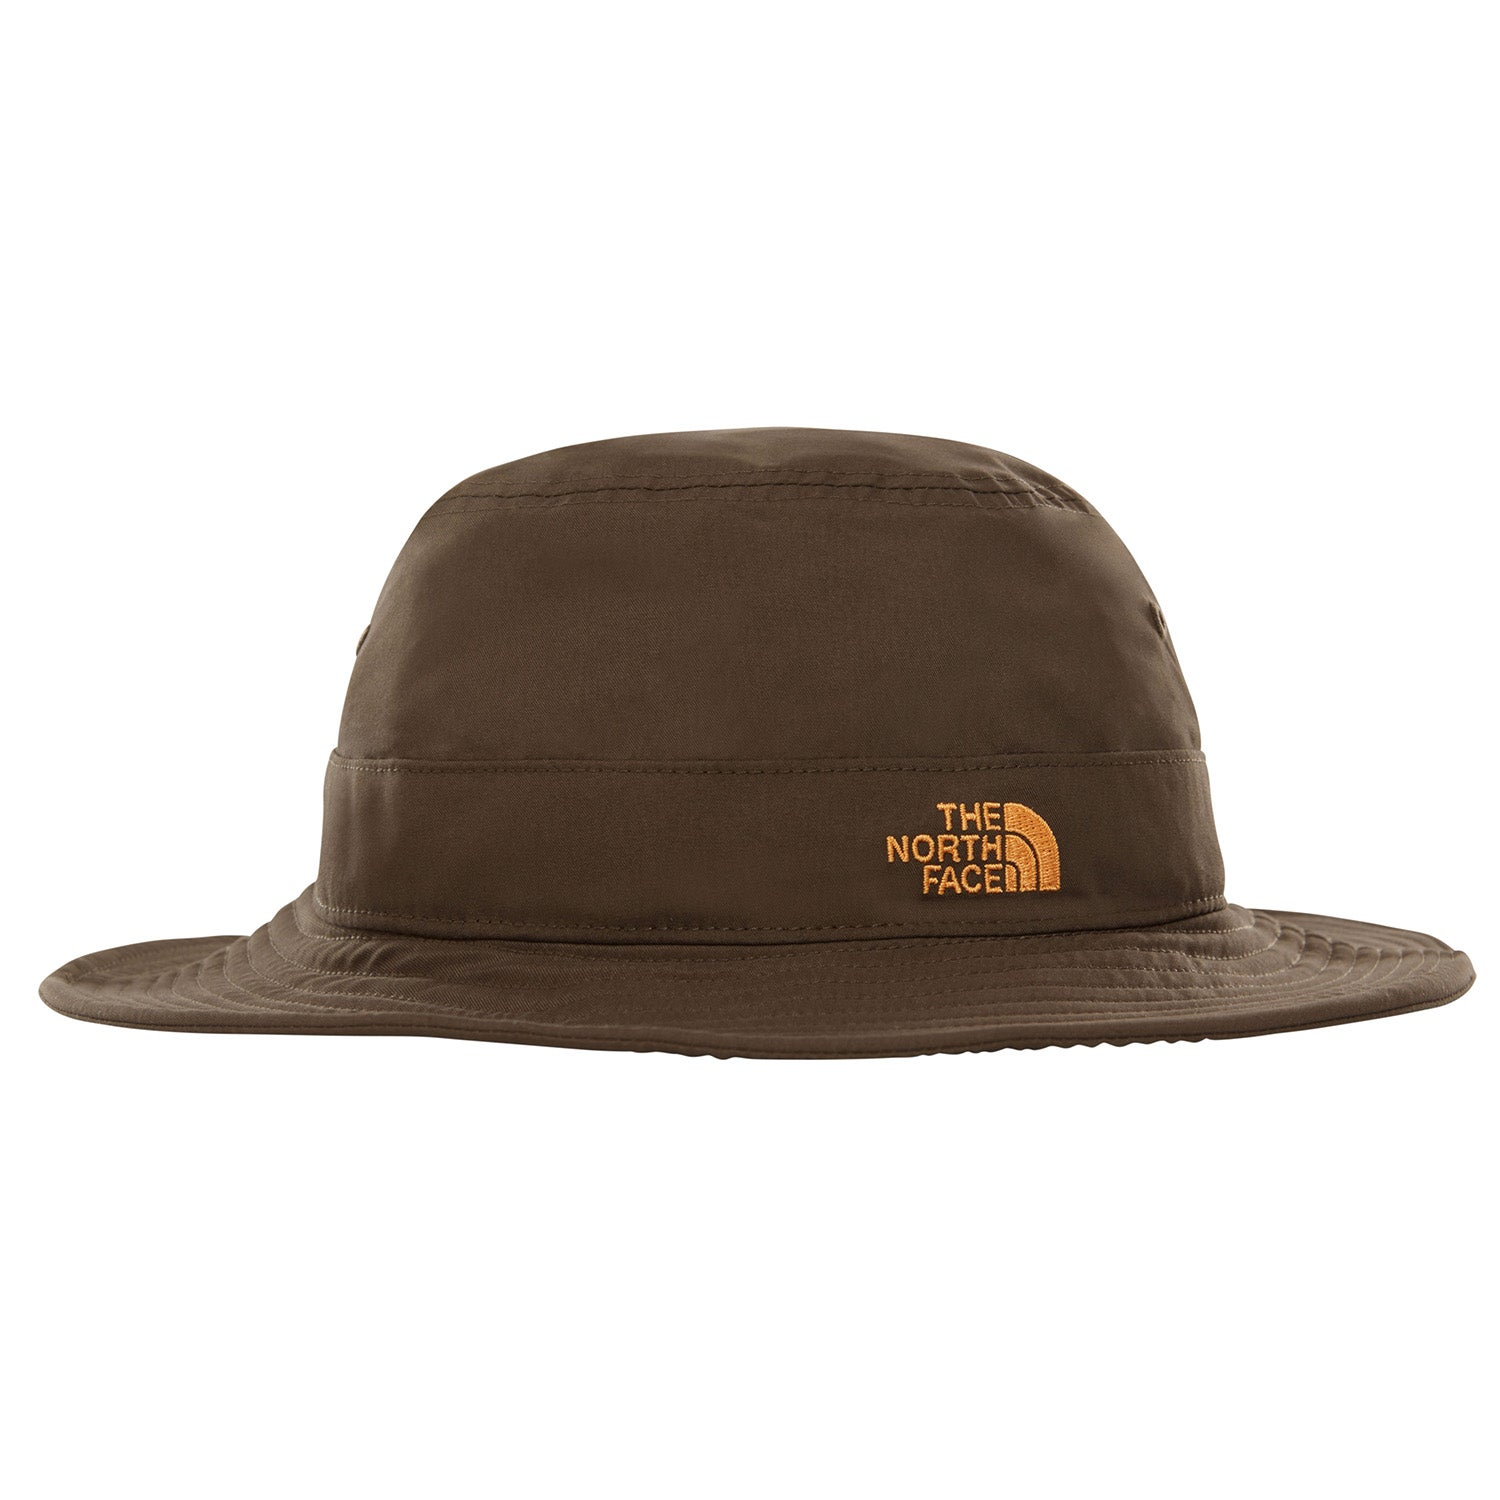 ba2d9a533 Details about The North Face Class V Brimmer Kids Headwear Hat - New Taupe  Green All Sizes